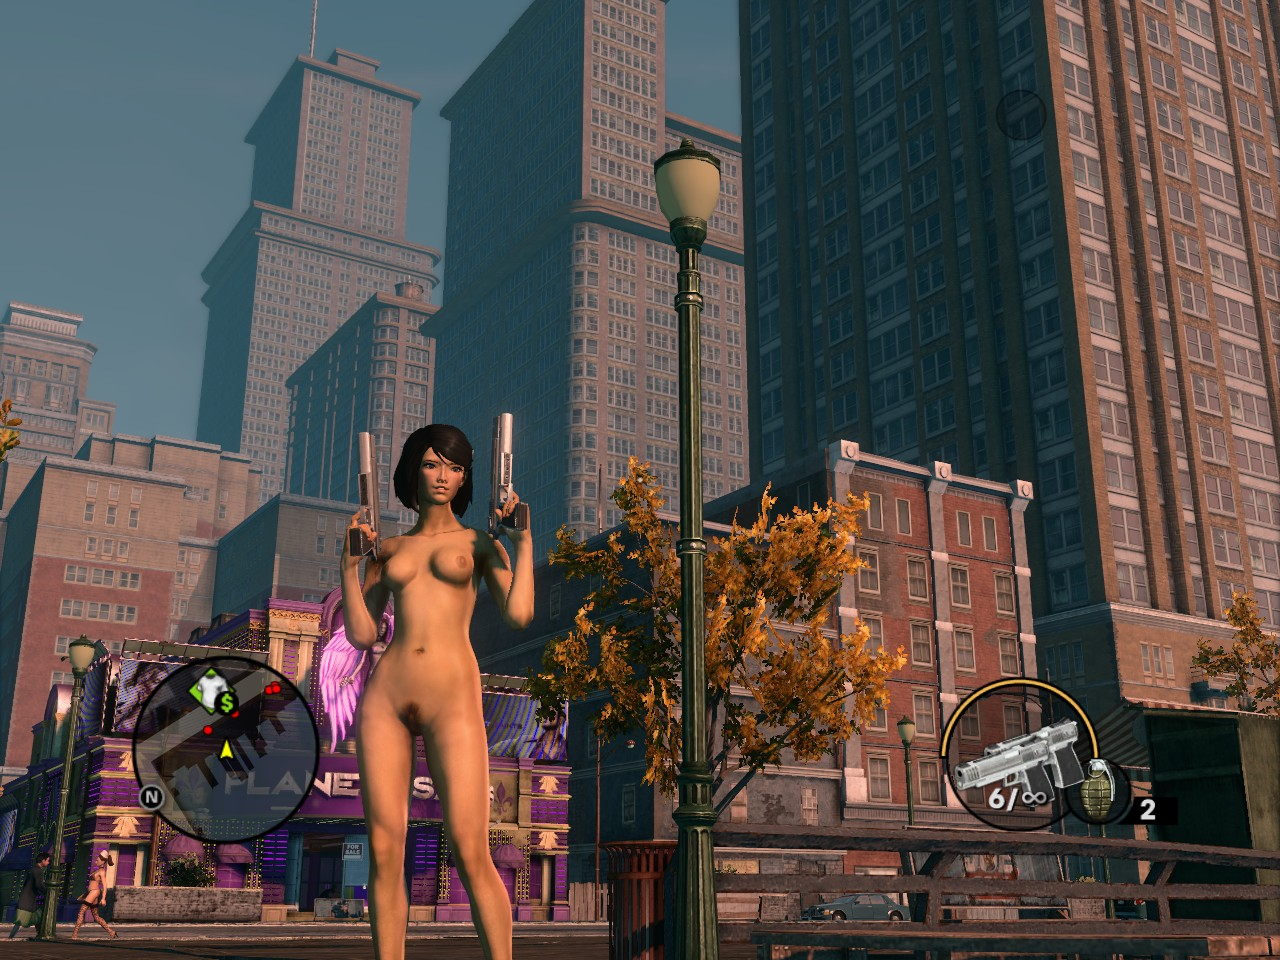 Saints row 2 naked mods sexual clip